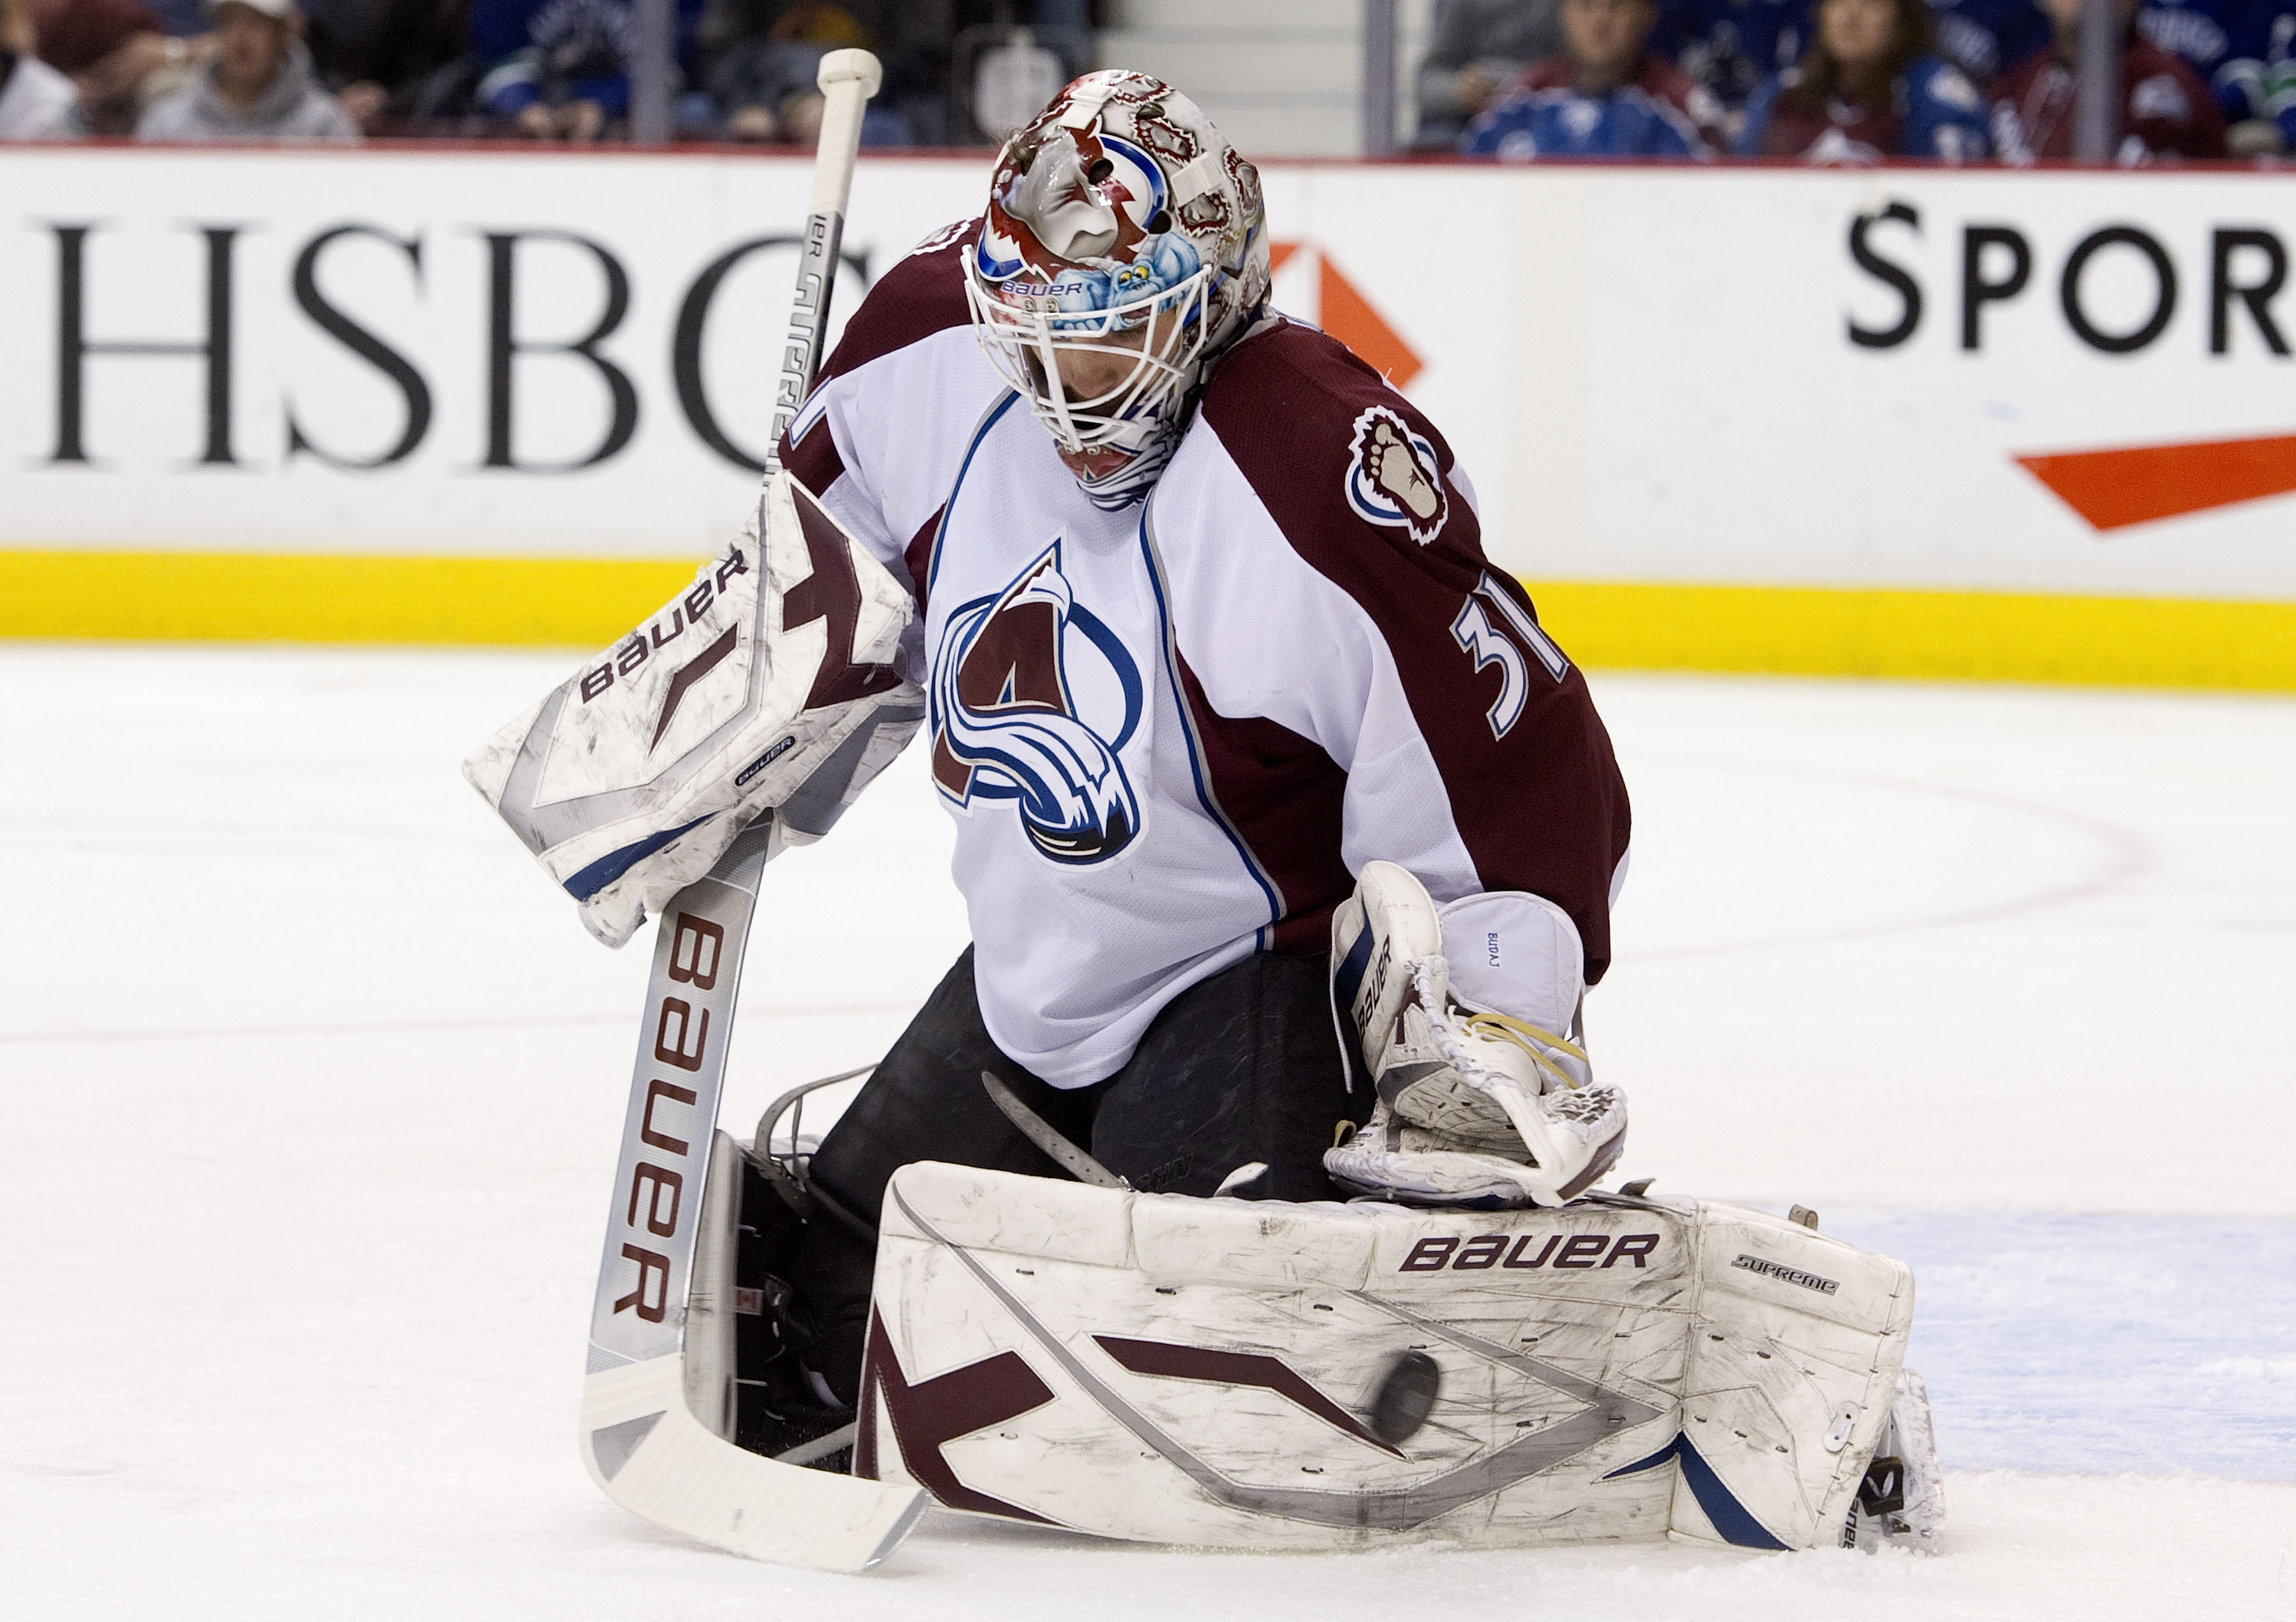 VANCOUVER, CANADA - NOVEMBER 24: Goalie Peter Budaj #31 of the Colorado Avalanche makes a pad save against the Vancouver Canucks during the second period in NHL action on November 24, 2010 at Rogers Arena in Vancouver, British Columbia, Canada.  (Photo by